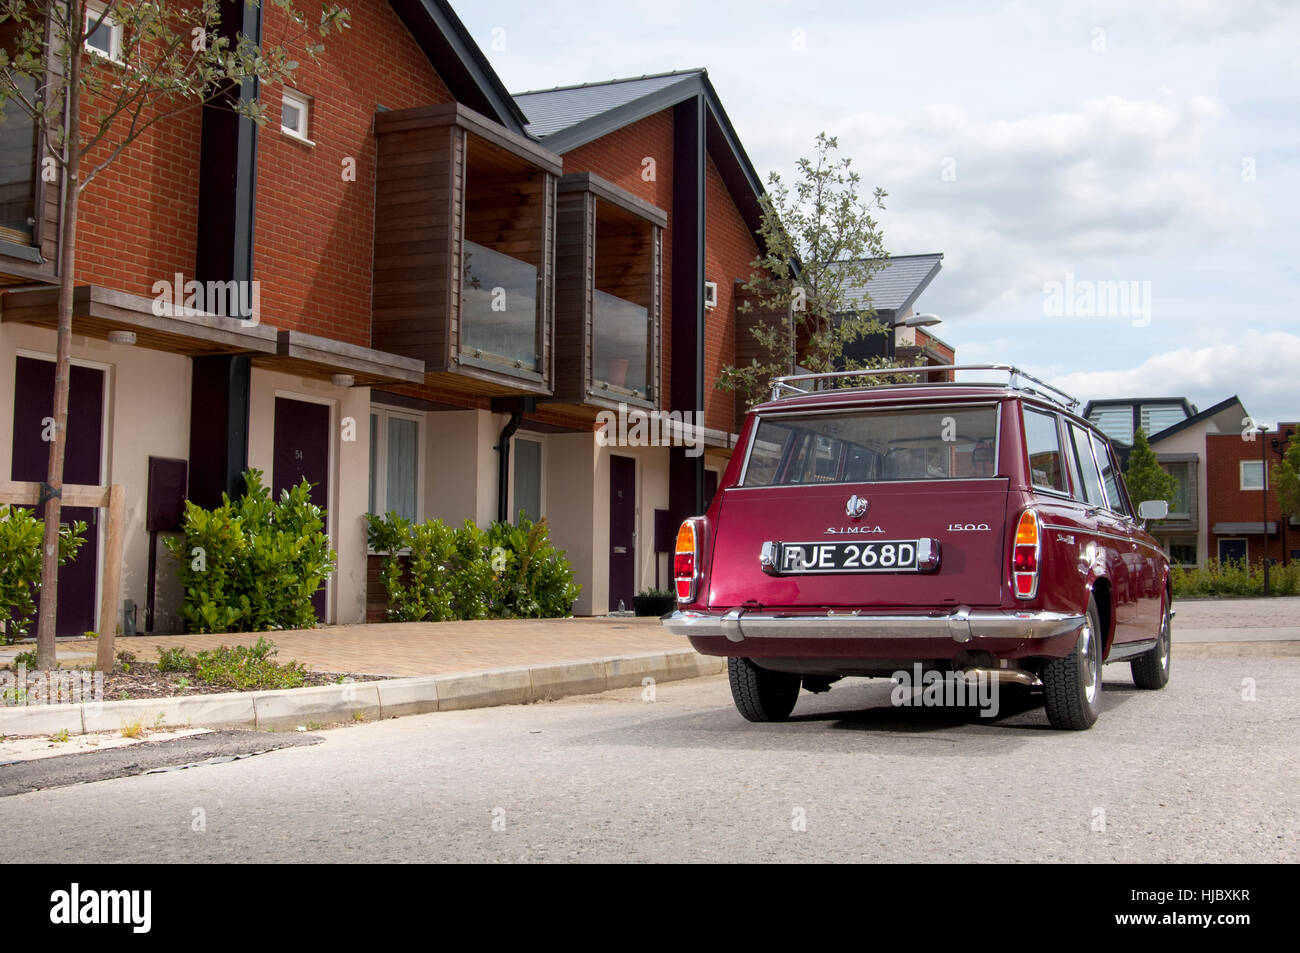 1966 Simca 1500 classic French estate car - Stock Image